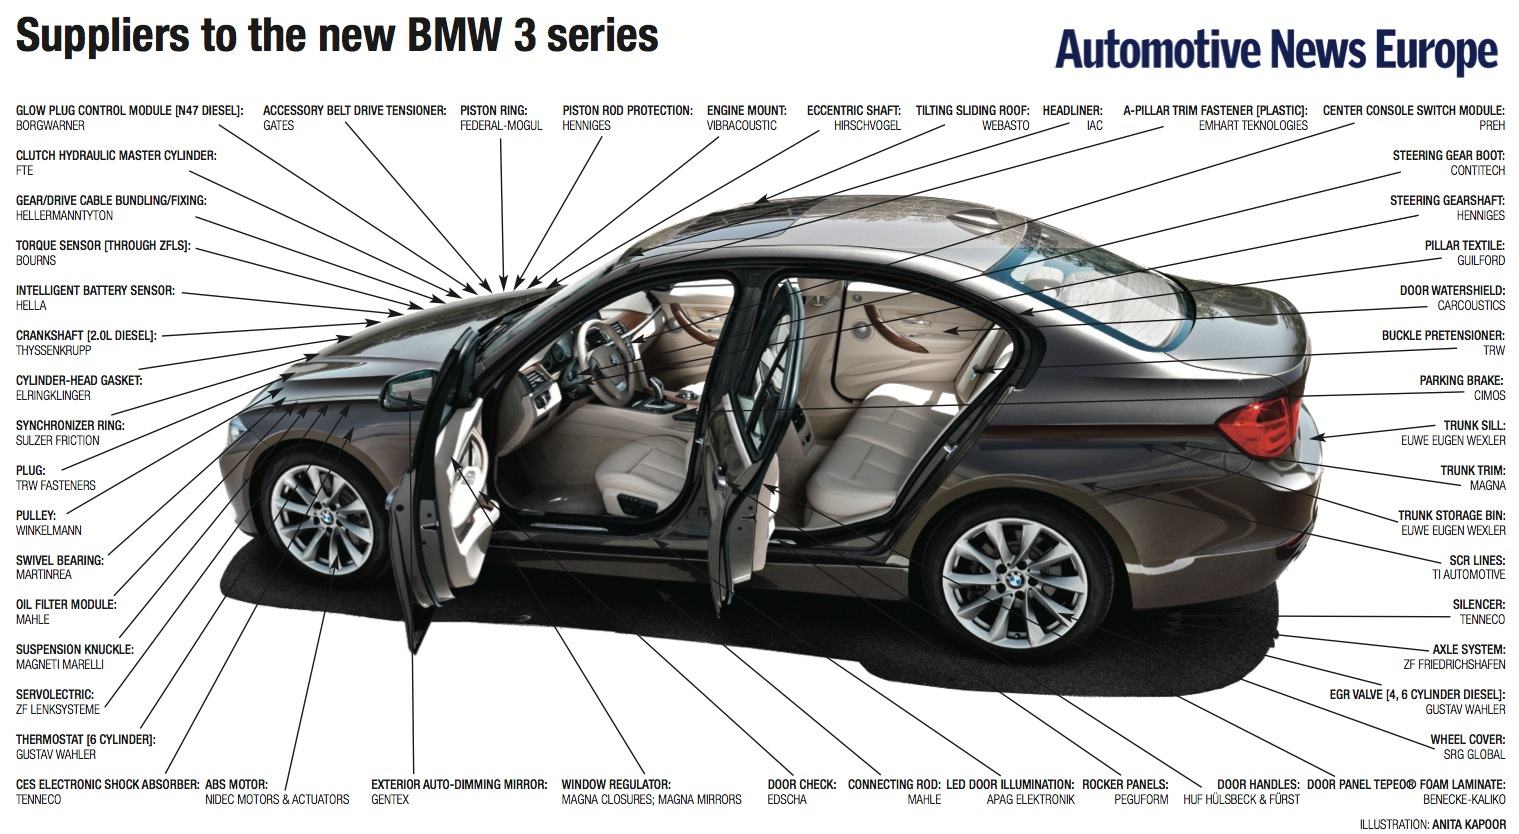 Suppliers To The Bmw 3 And 4 Series